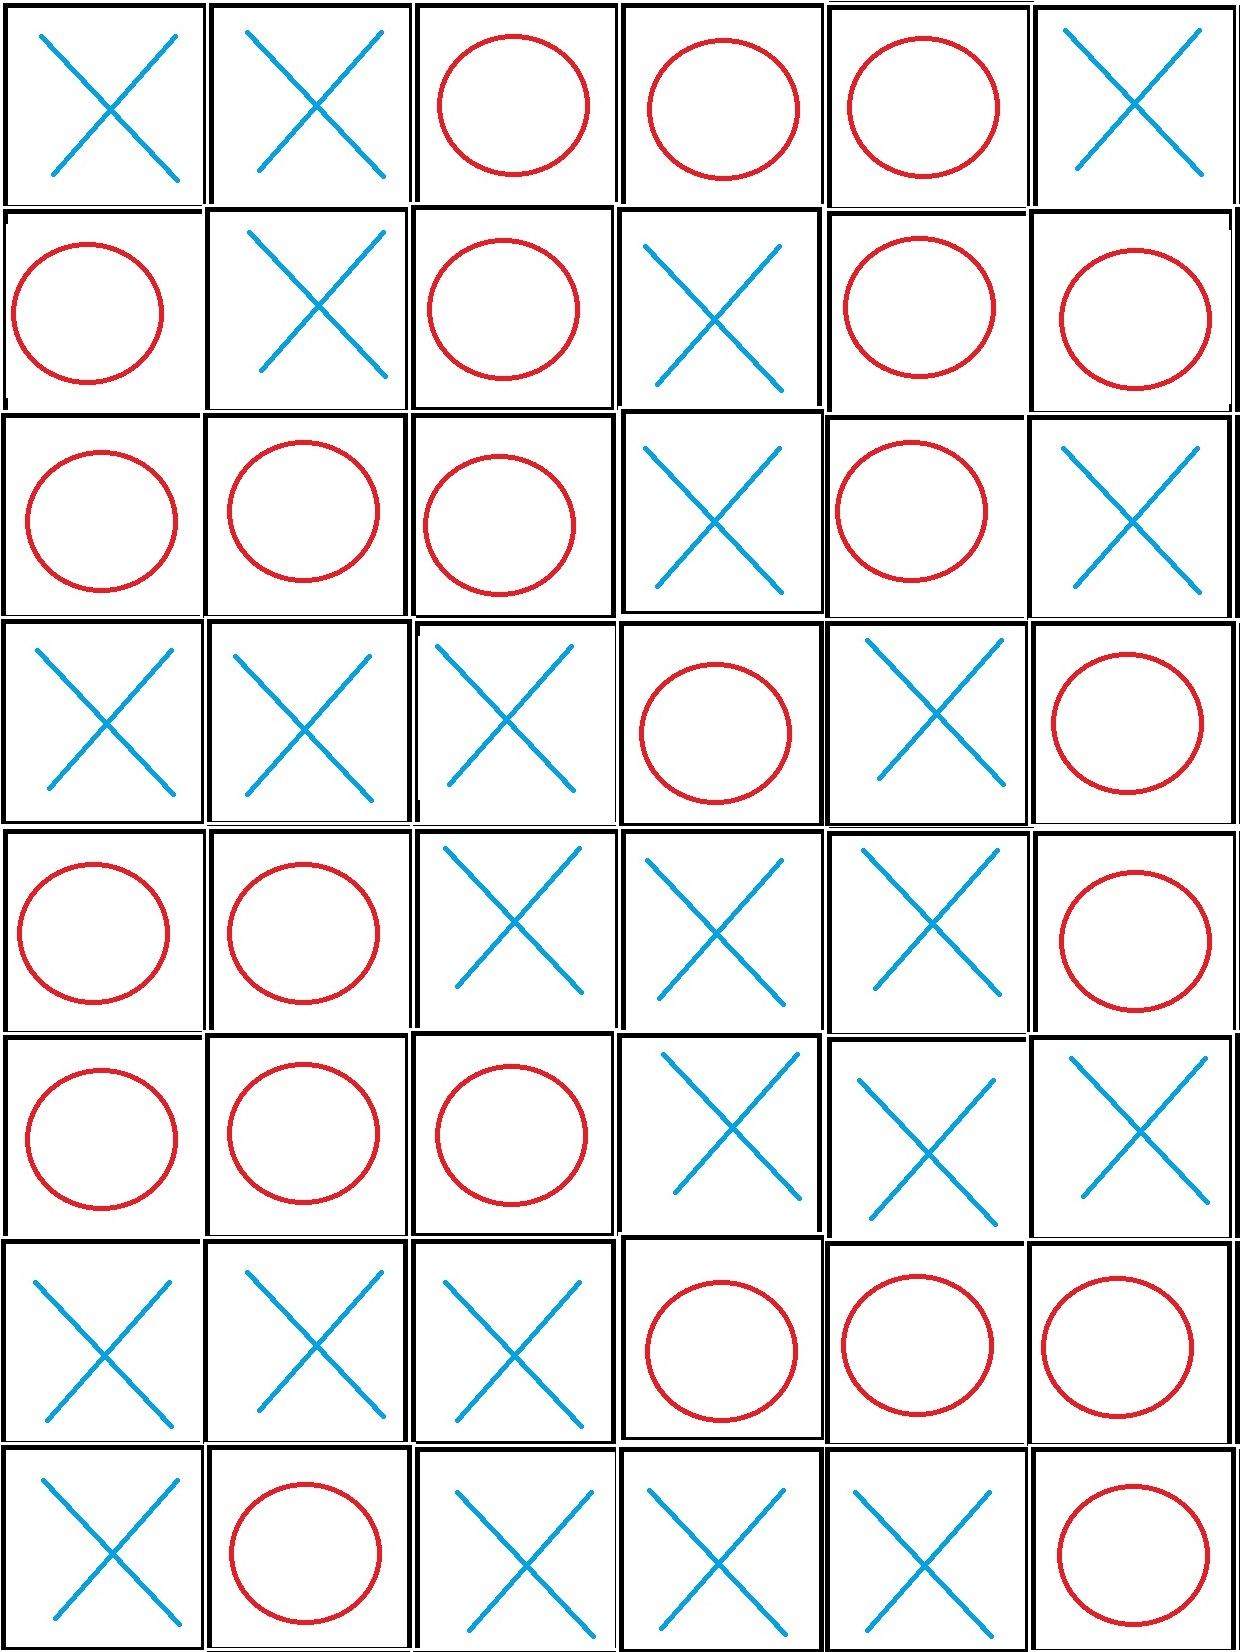 Pathfinder: Wrath of the Righteous - Puzzle Solution Tips for Enigma - Playthrough - Puzzle 1: Tic Tac Toe - FEAFCDF